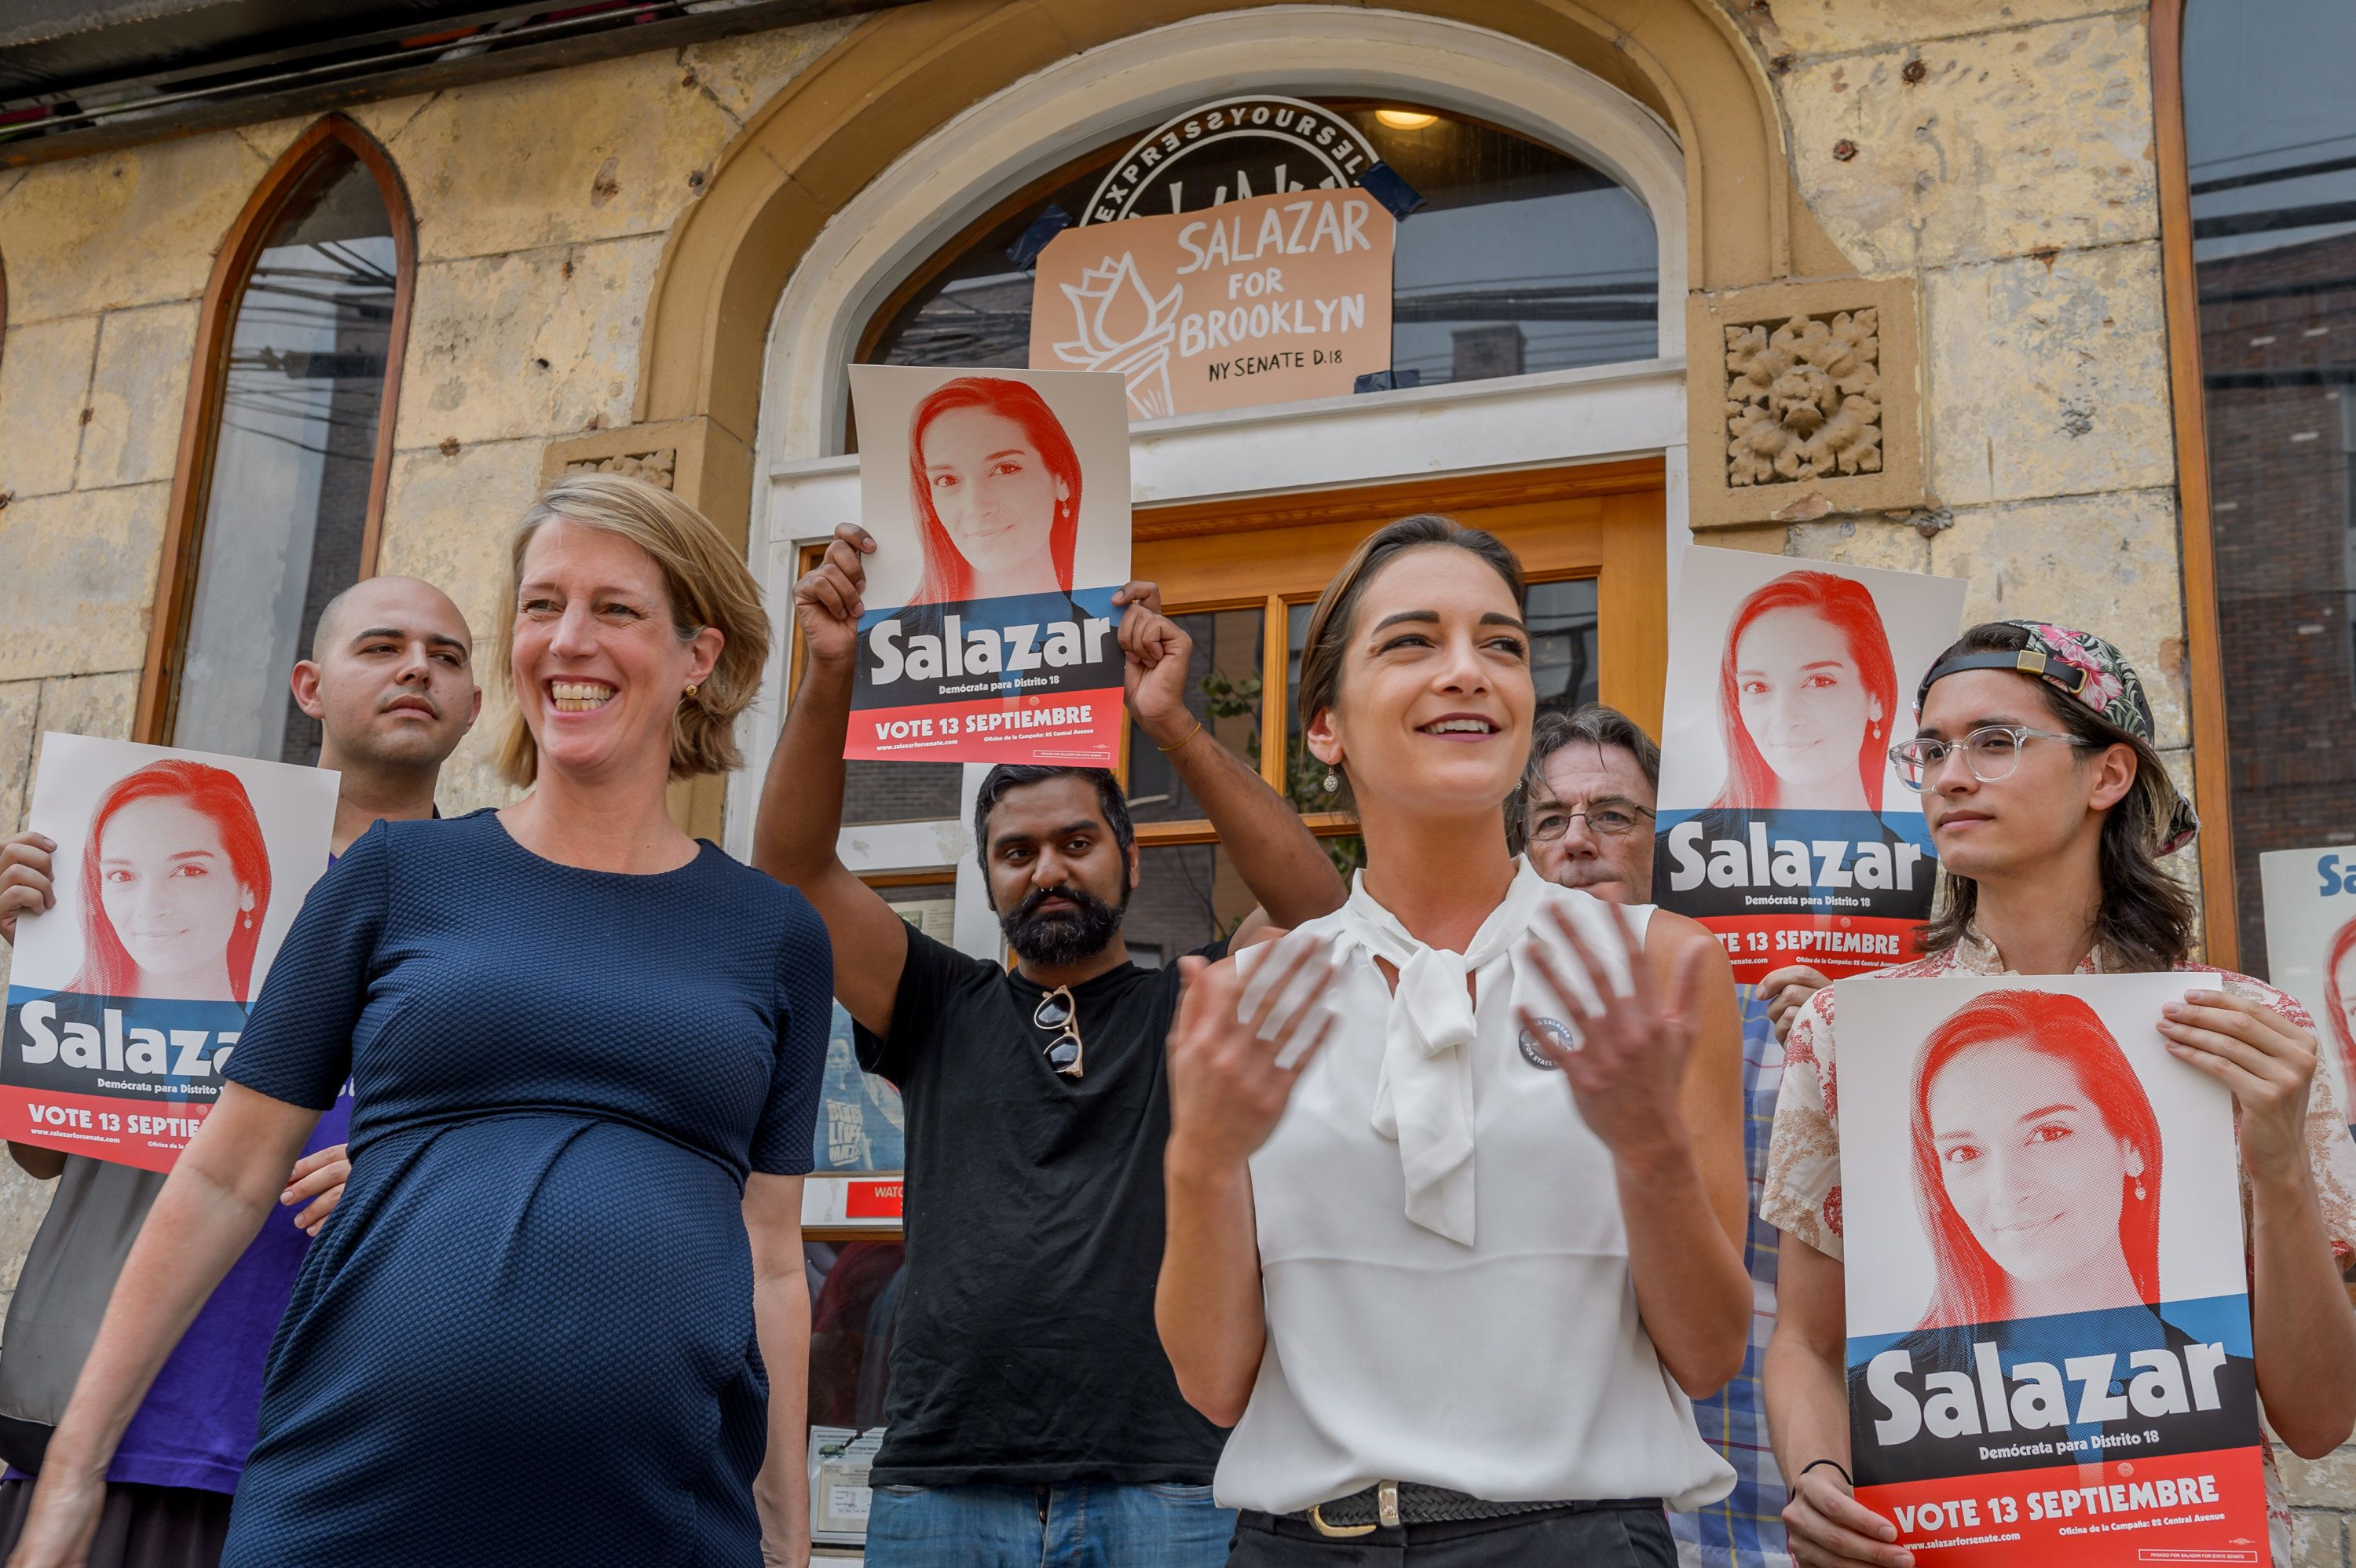 JULIA SALAZAR CAMPAIGN OFFICES, BROOKLYN, NY, UNITED STATES - 2018/08/06: Julia Salazar, candidate for NYS Senate, and Zephyr Teachout, candidate for NYS Attorney General, held together a press conference on August 6, 2018 to endorse one another in Salazars Bushwick neighborhood. Salazar is the insurgent candidate challenging 16-year incumbent Martin Dilan for the State Senate seat in district 18. (Photo by Erik McGregor/Pacific Press/LightRocket via Getty Images)